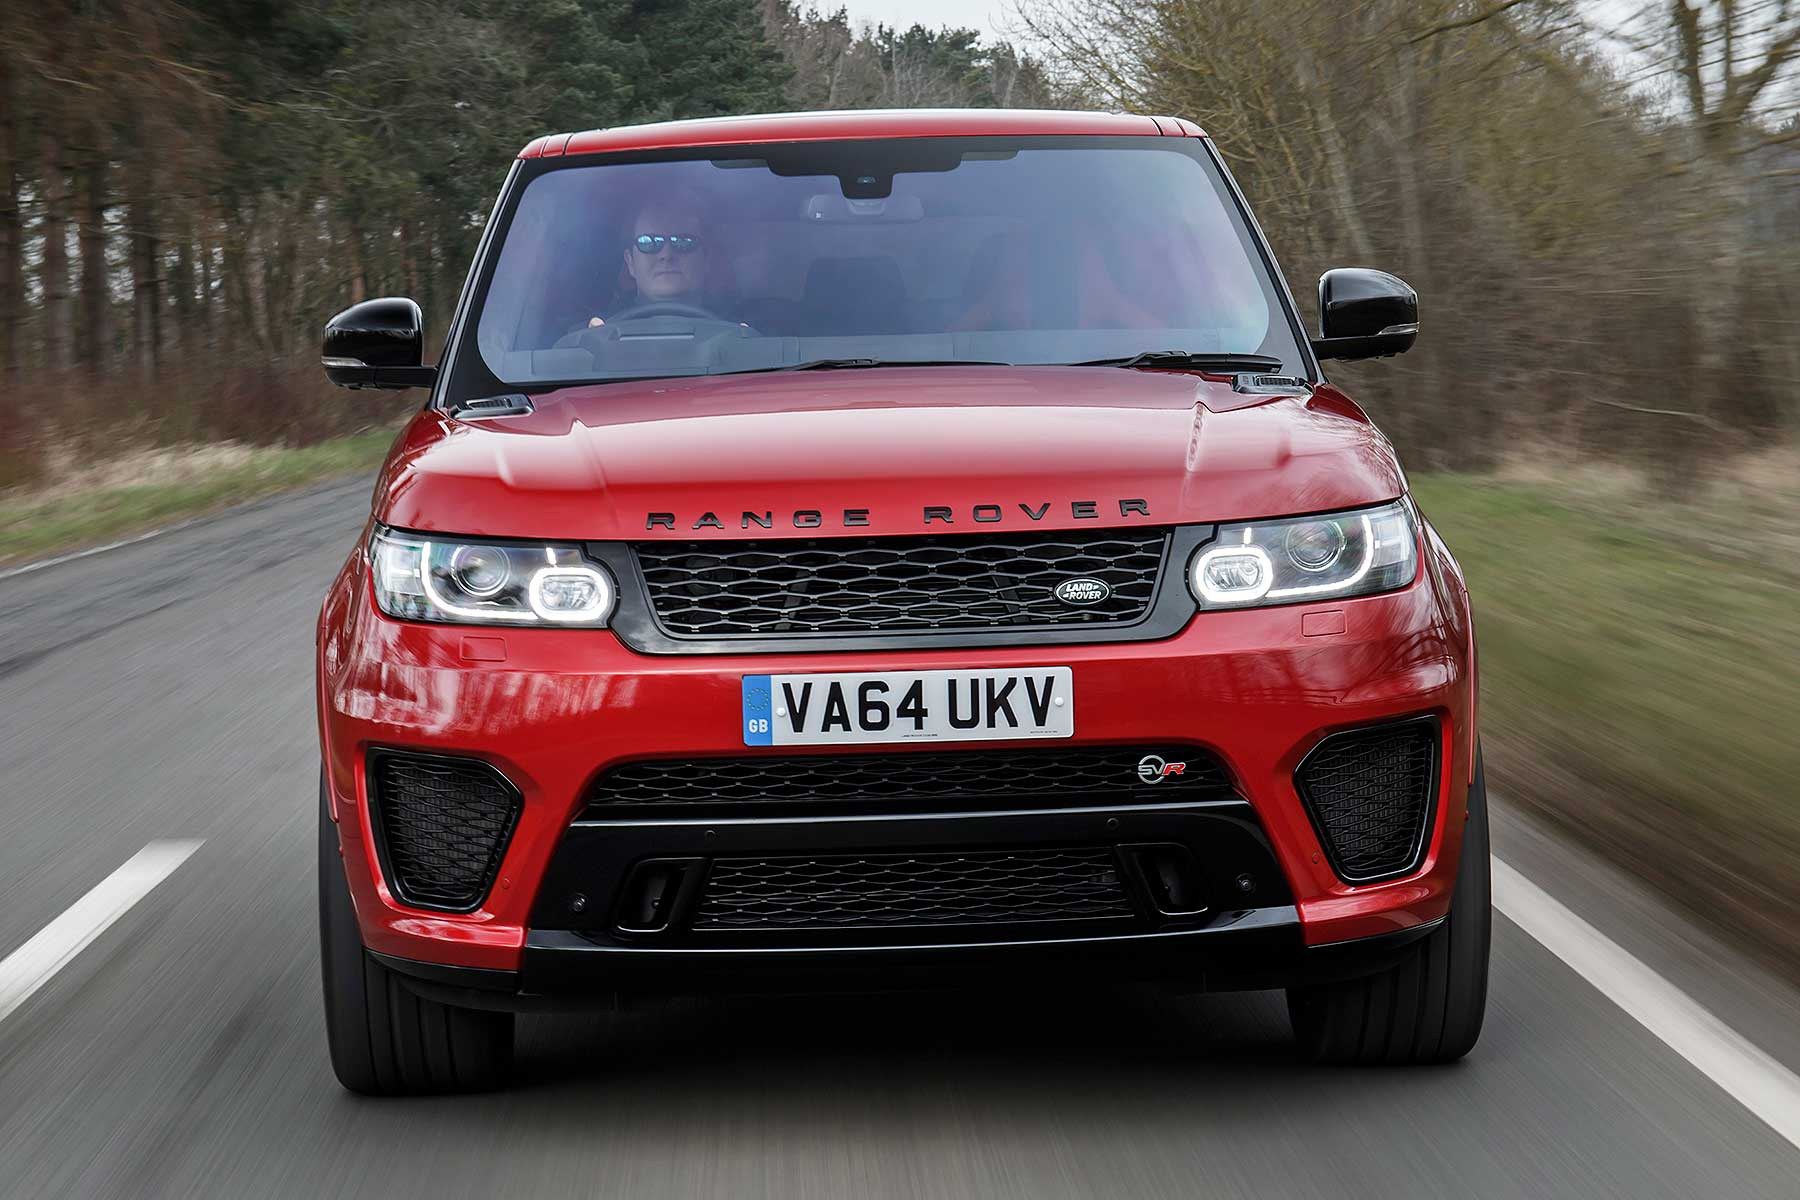 range rover sport svr review 2015 first drive motoring research. Black Bedroom Furniture Sets. Home Design Ideas